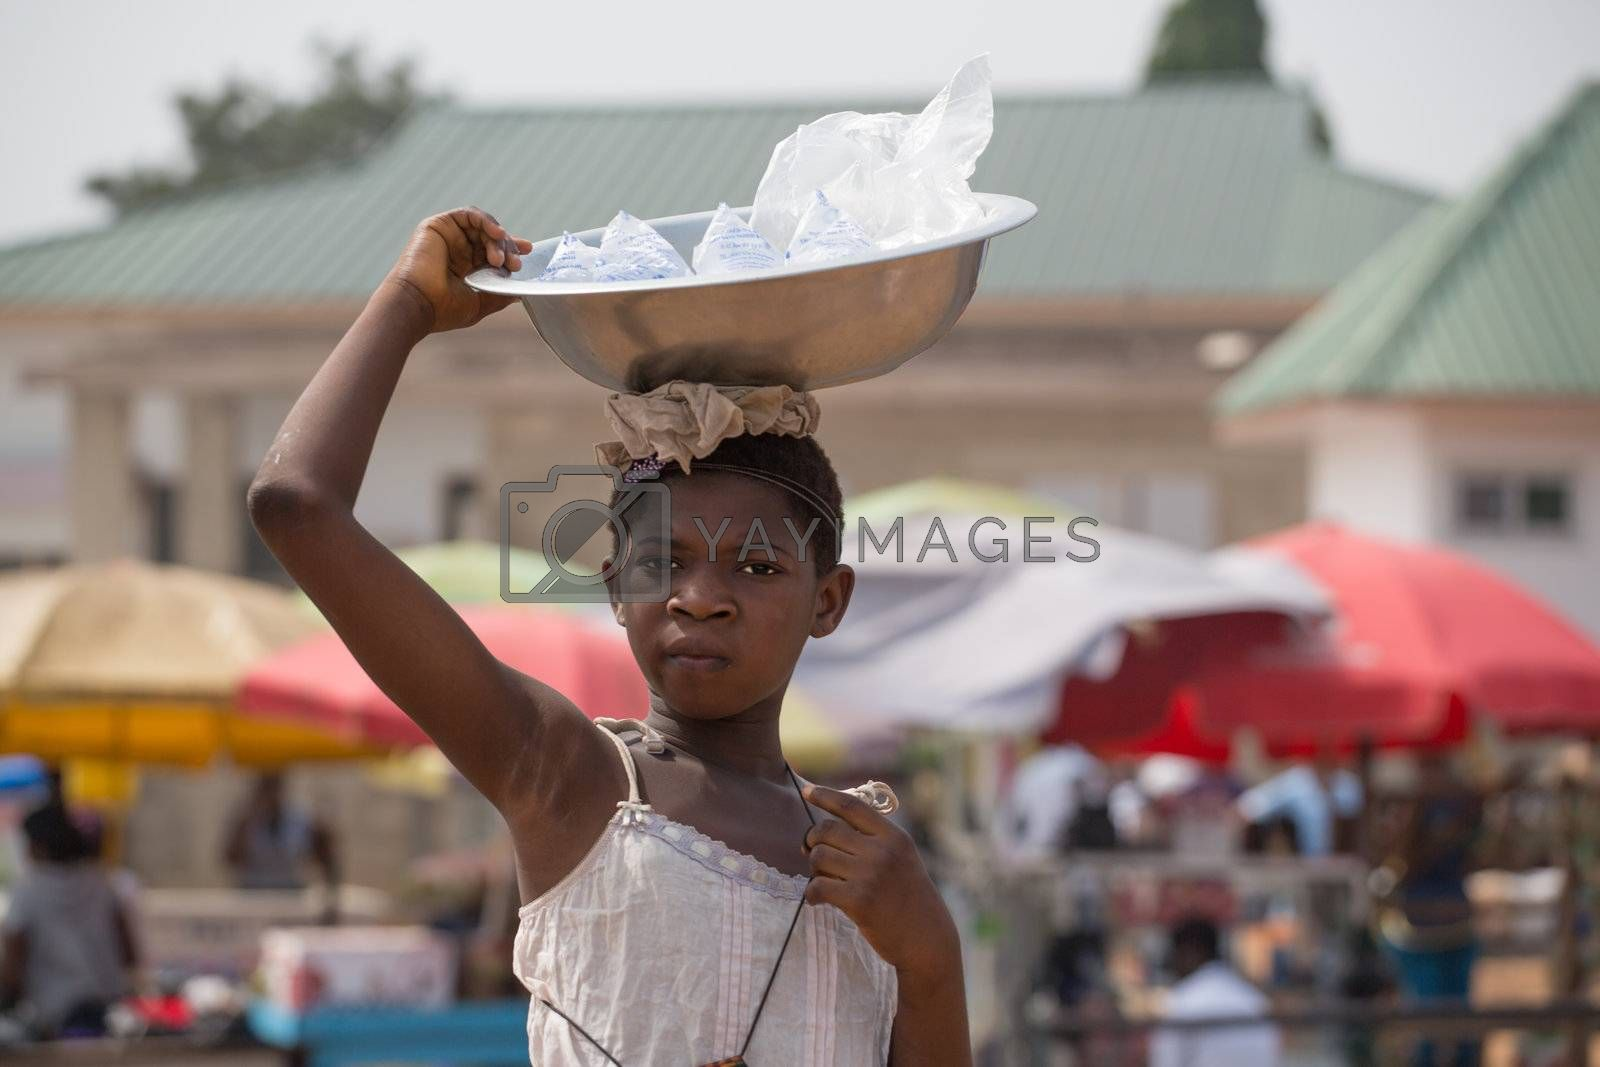 A little girl selling ice wrapped in plastic bags in Ghana